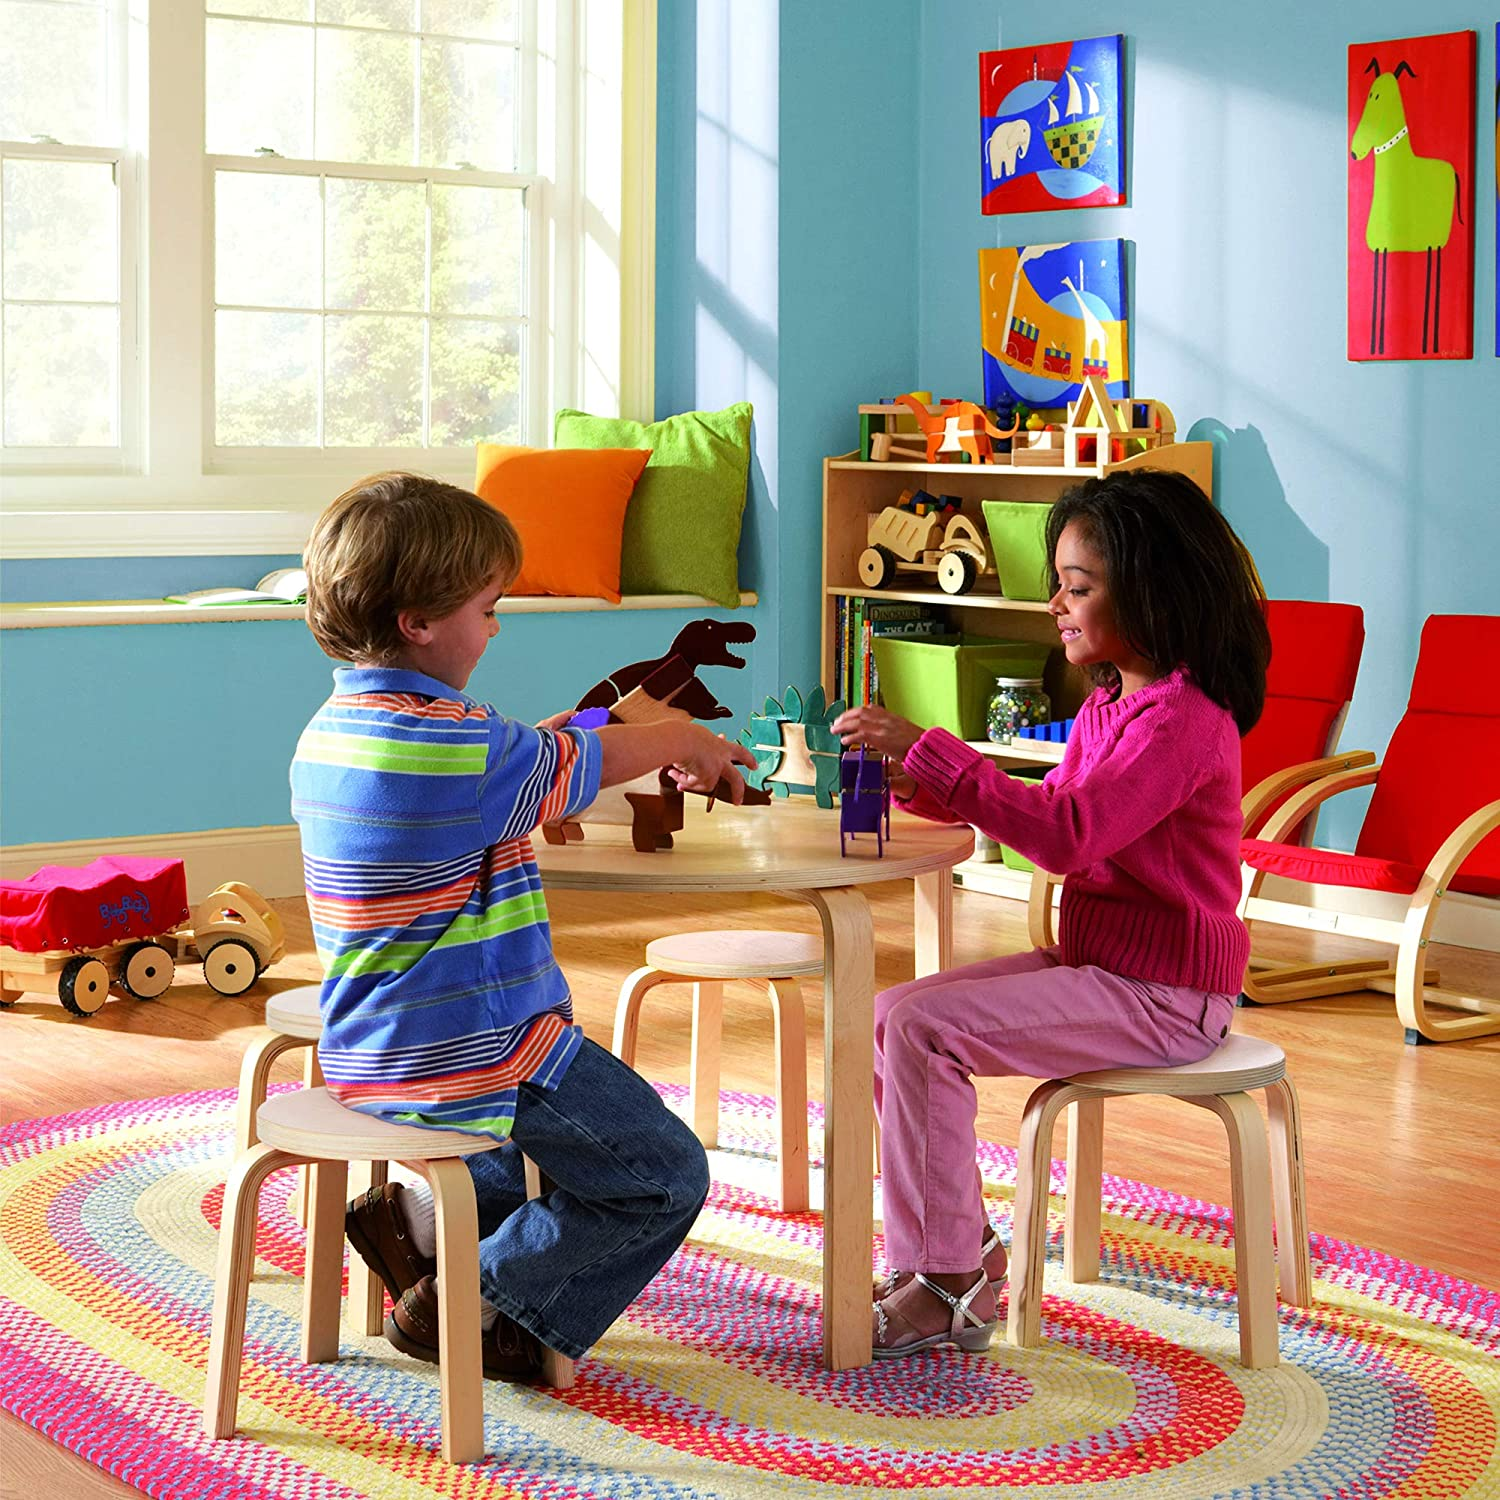 Amazon Com Guidecraft Nordic Table And Chairs Set For Kids Natural 4 Stacking Bentwood Stools With Curved Wood Activity Table Children S Modern Kitchen Playroom And Classroom Furniture Home Kitchen